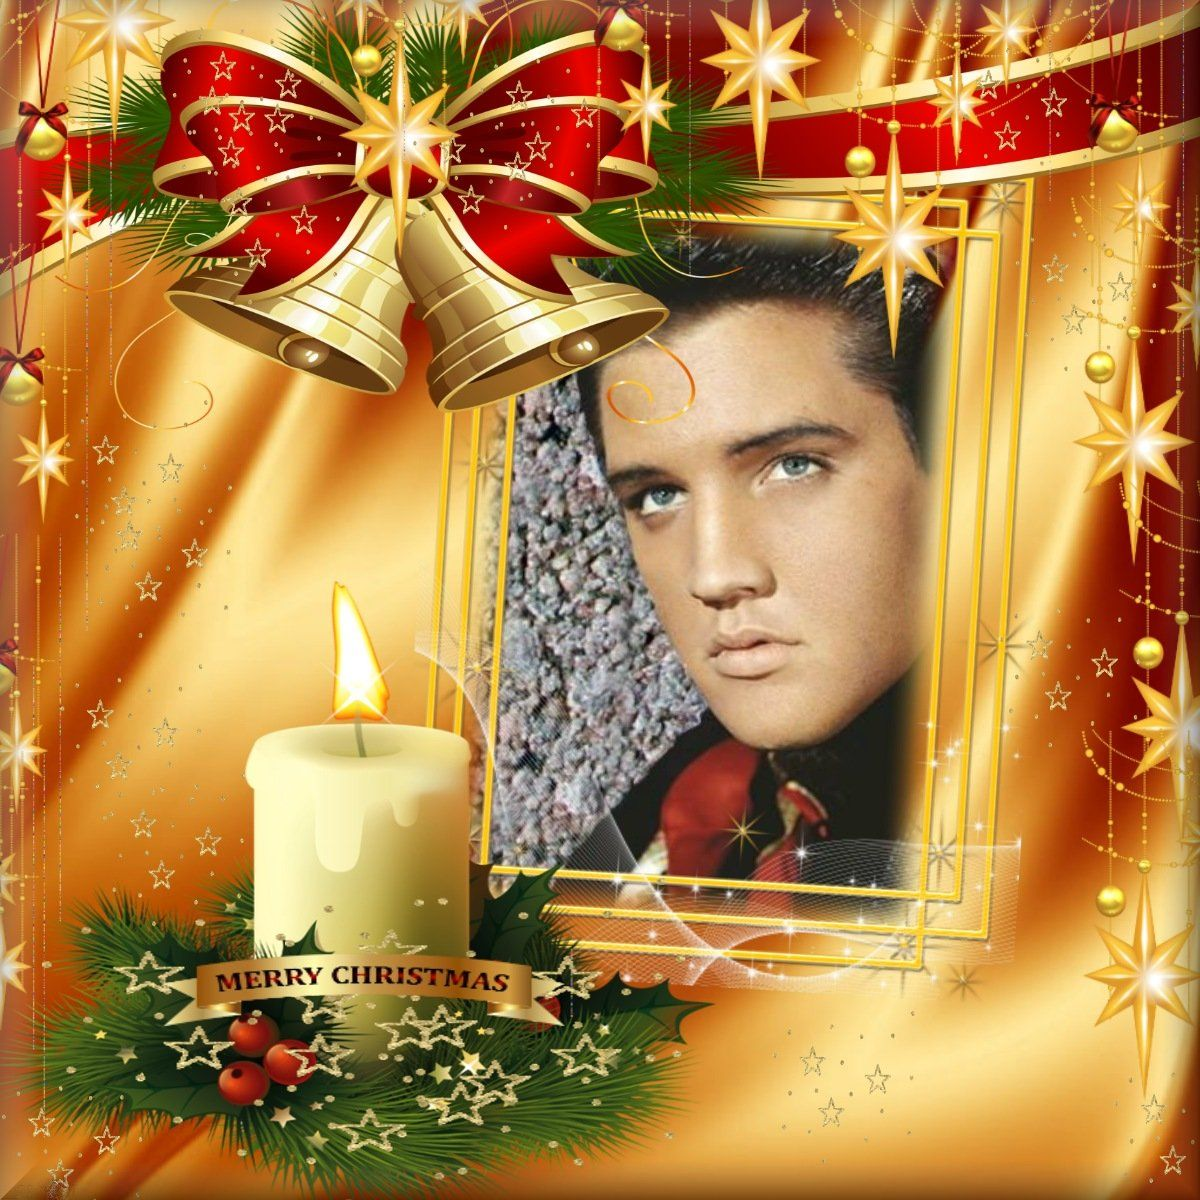 Elvis photo art Christmas with bells and candles in red and gold ...